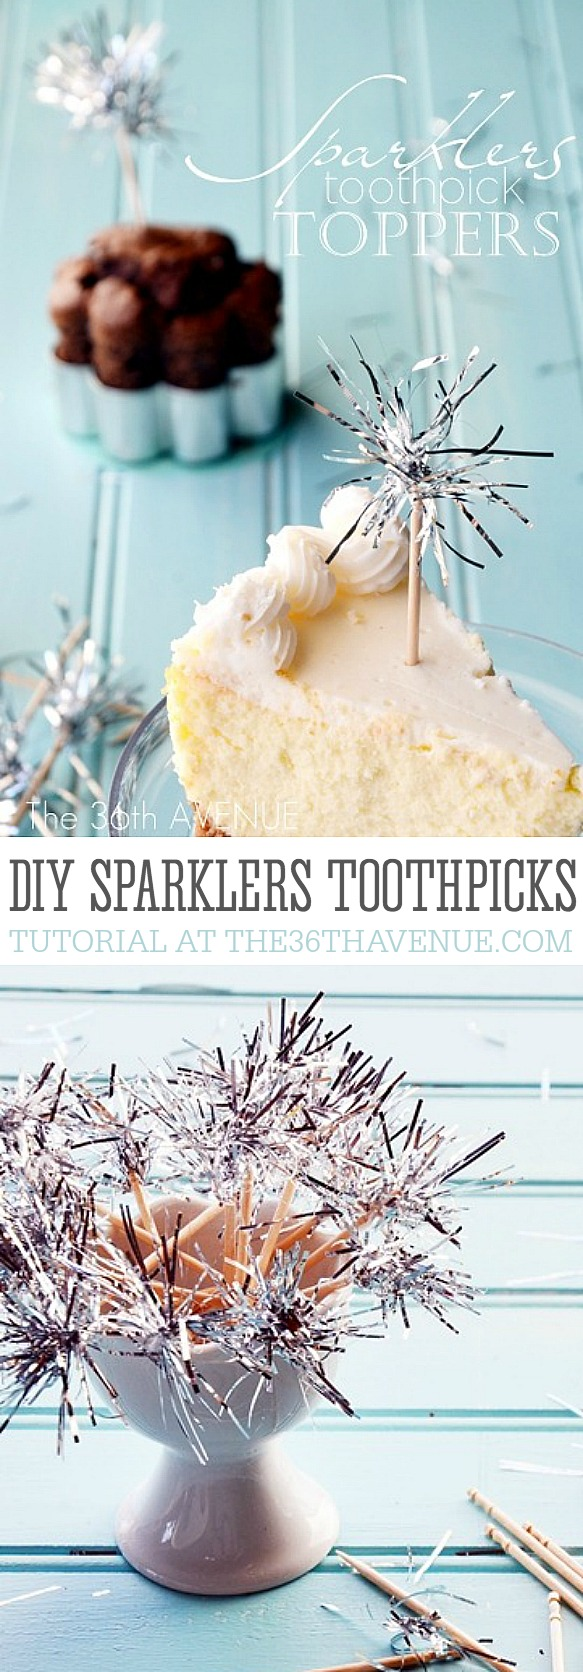 diy-sparklers-toothpicks-the36thavenue-com